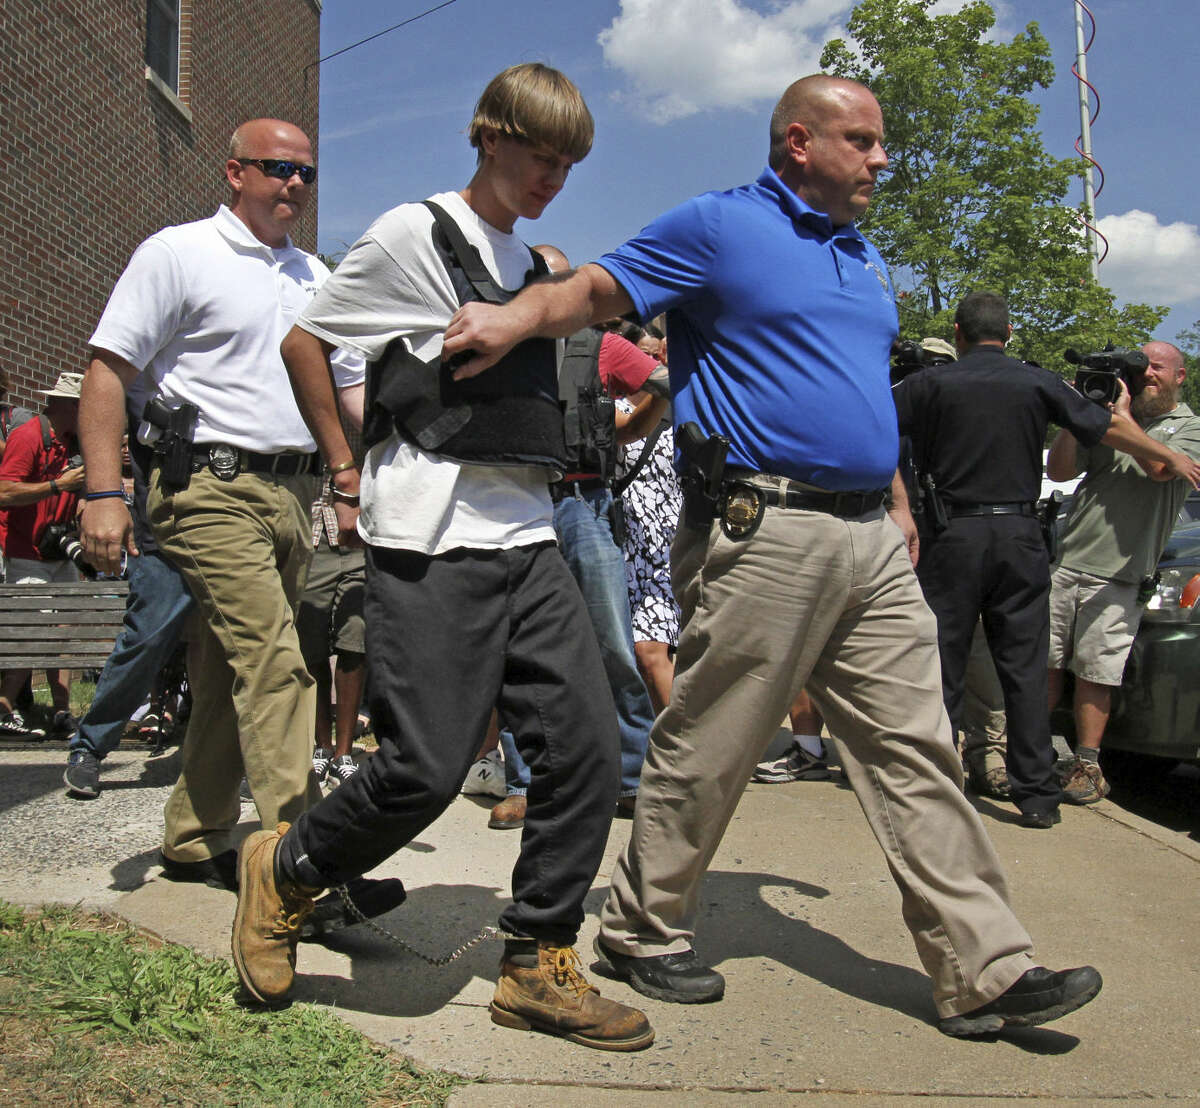 Charleston, S.C., shooting suspect Dylann Storm Roof, second from left, is escorted from the Shelby Police Department in Shelby, N.C., Thursday, June 18, 2015. Roof is a suspect in the shooting of several people Wednesday night at the historic The Emanuel African Methodist Episcopal Church in Charleston, S.C. (AP Photo/Chuck Burton)